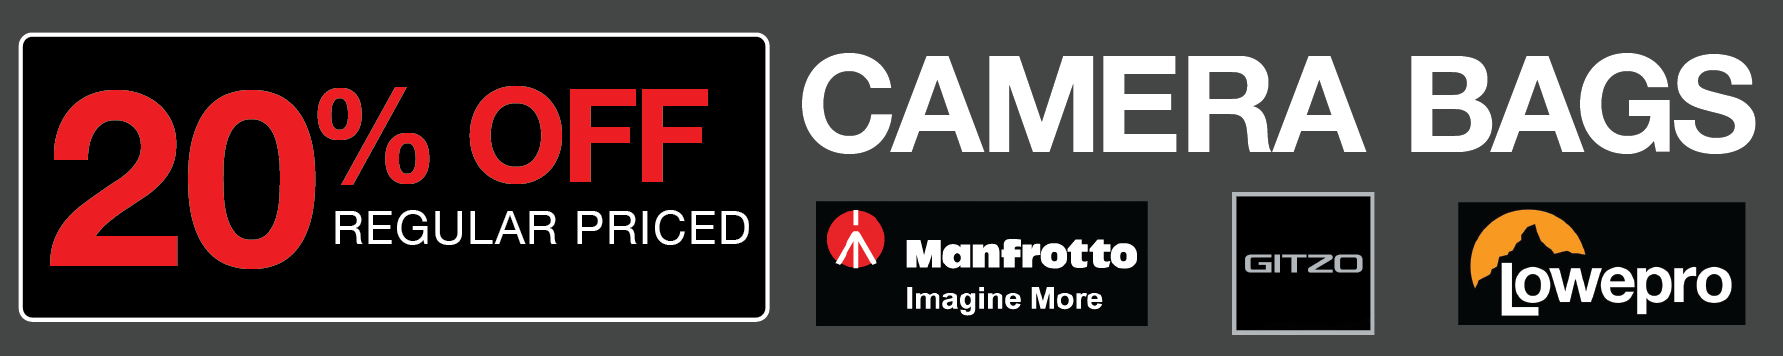 20% OFF Camera Bags - Manfrotto | Gitzo | Lowepro